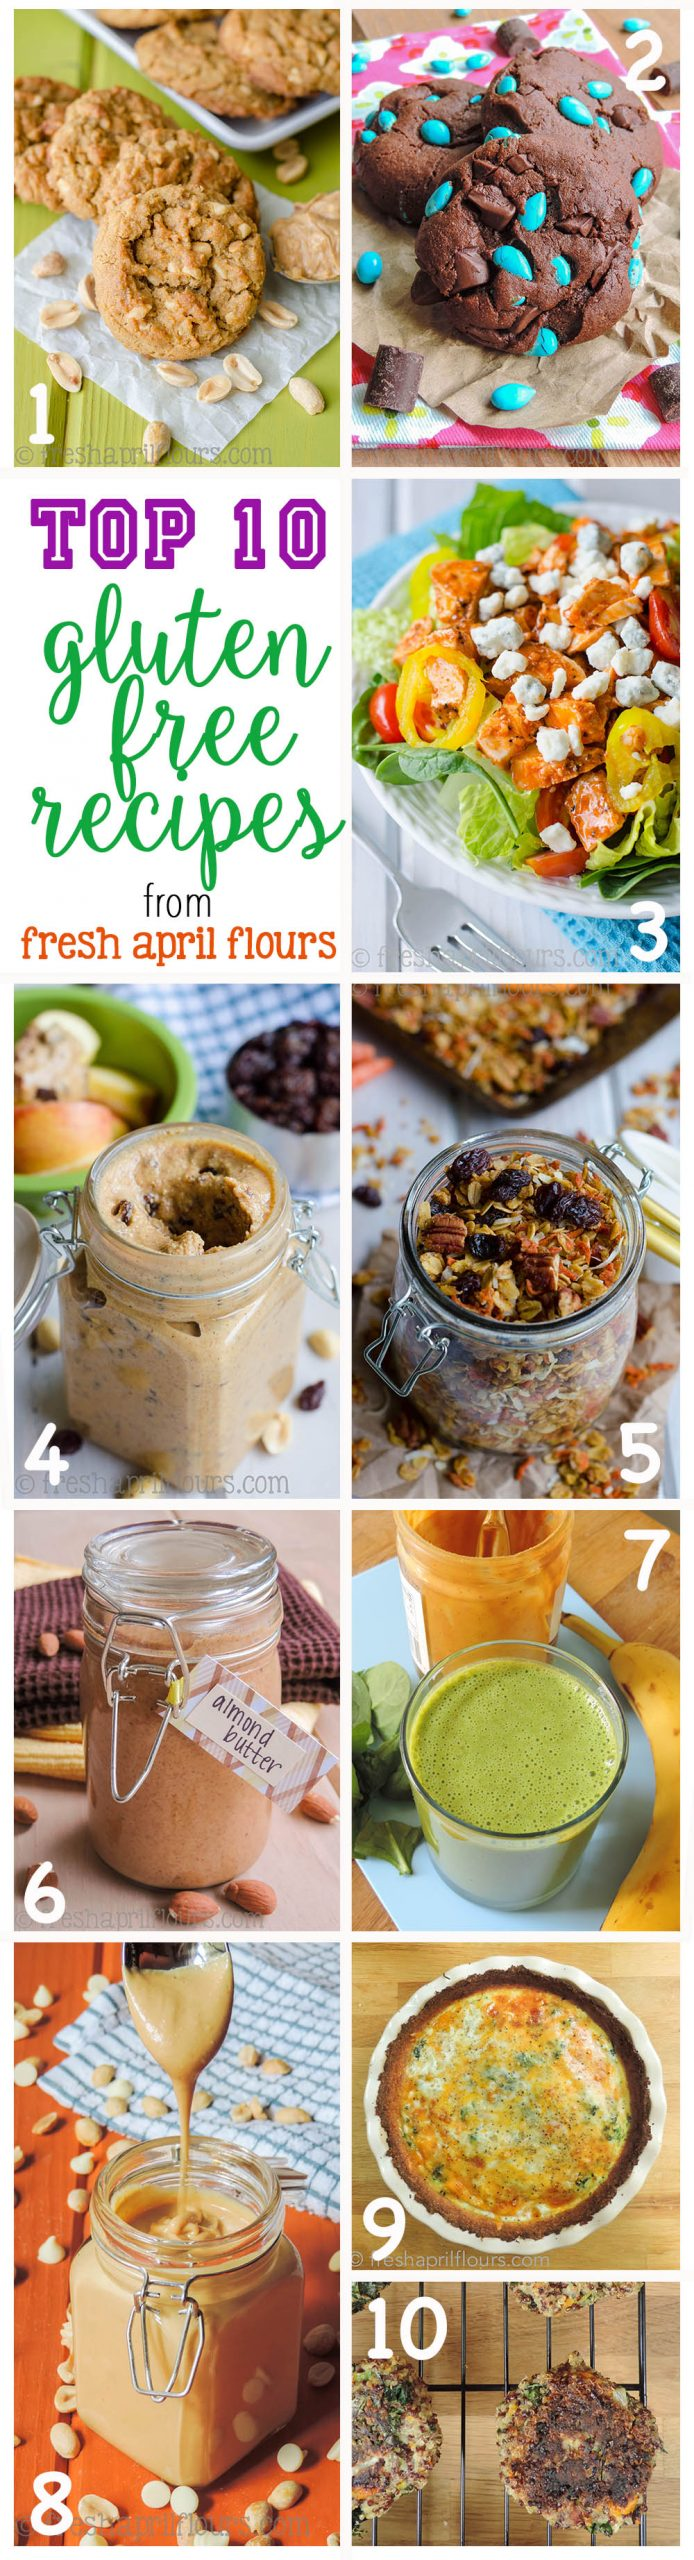 Top 10 Gluten Free Recipes from Fresh April Flours